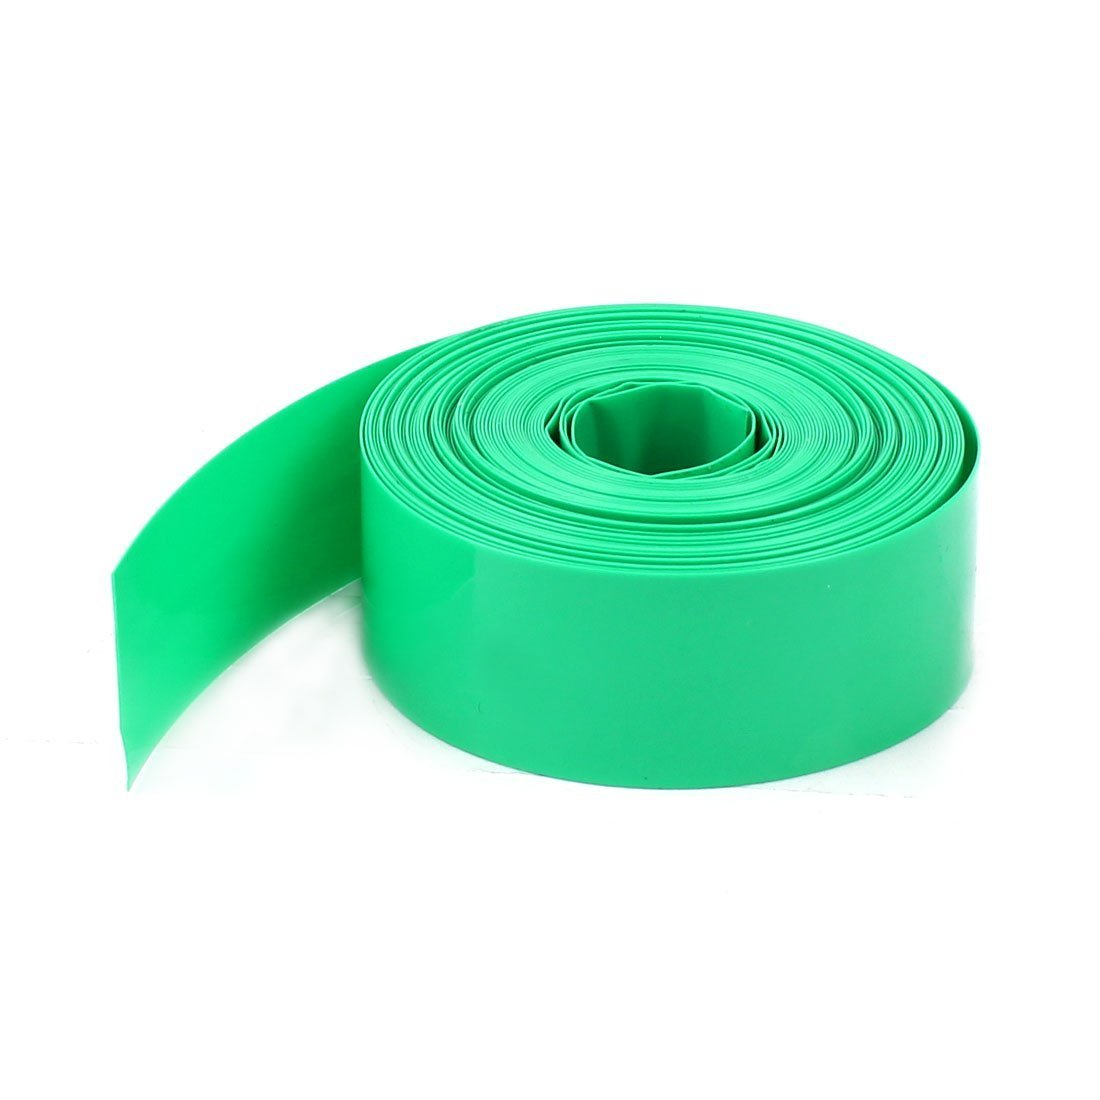 5m 16.4ft 23mm Green PVC Heat Shrink Wrap Tubing for 1 x AA Battery a15012300ux0264